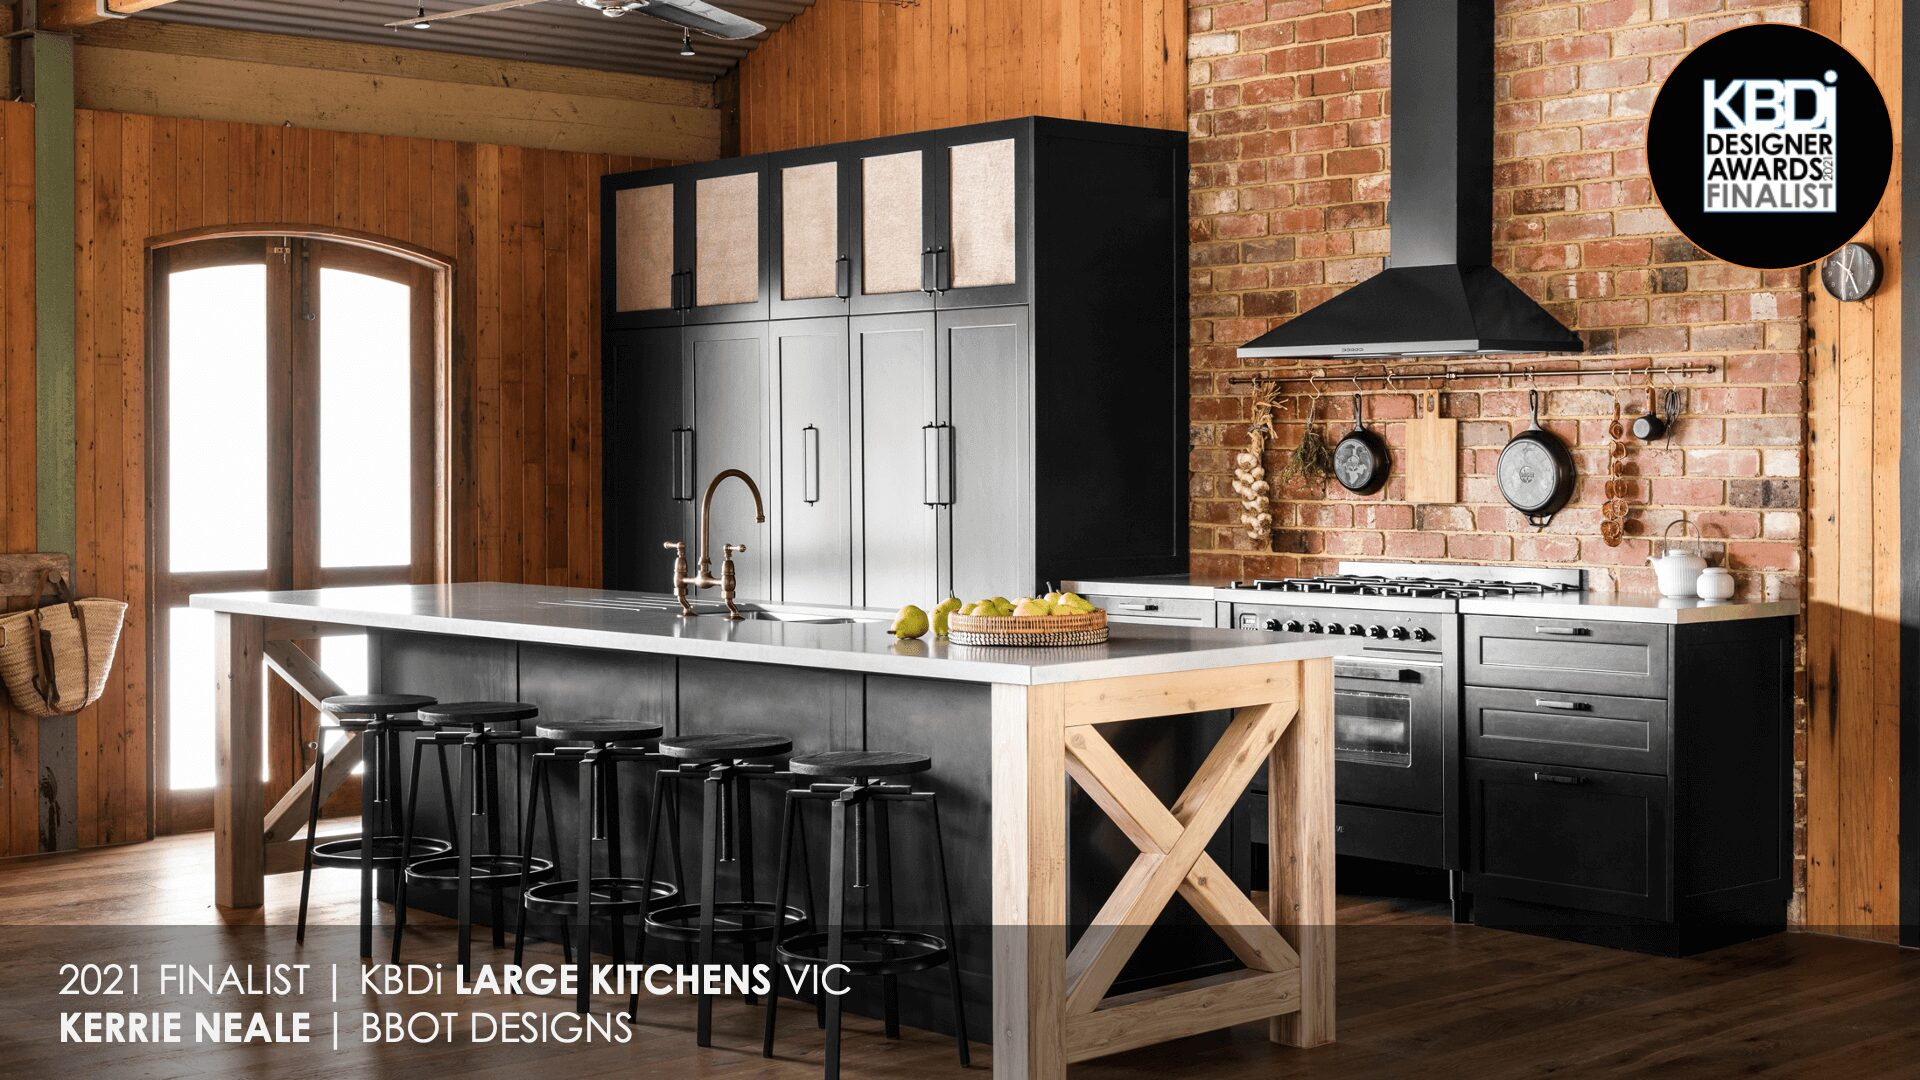 23_Kerrie Neale_Large Kitchens_VIC